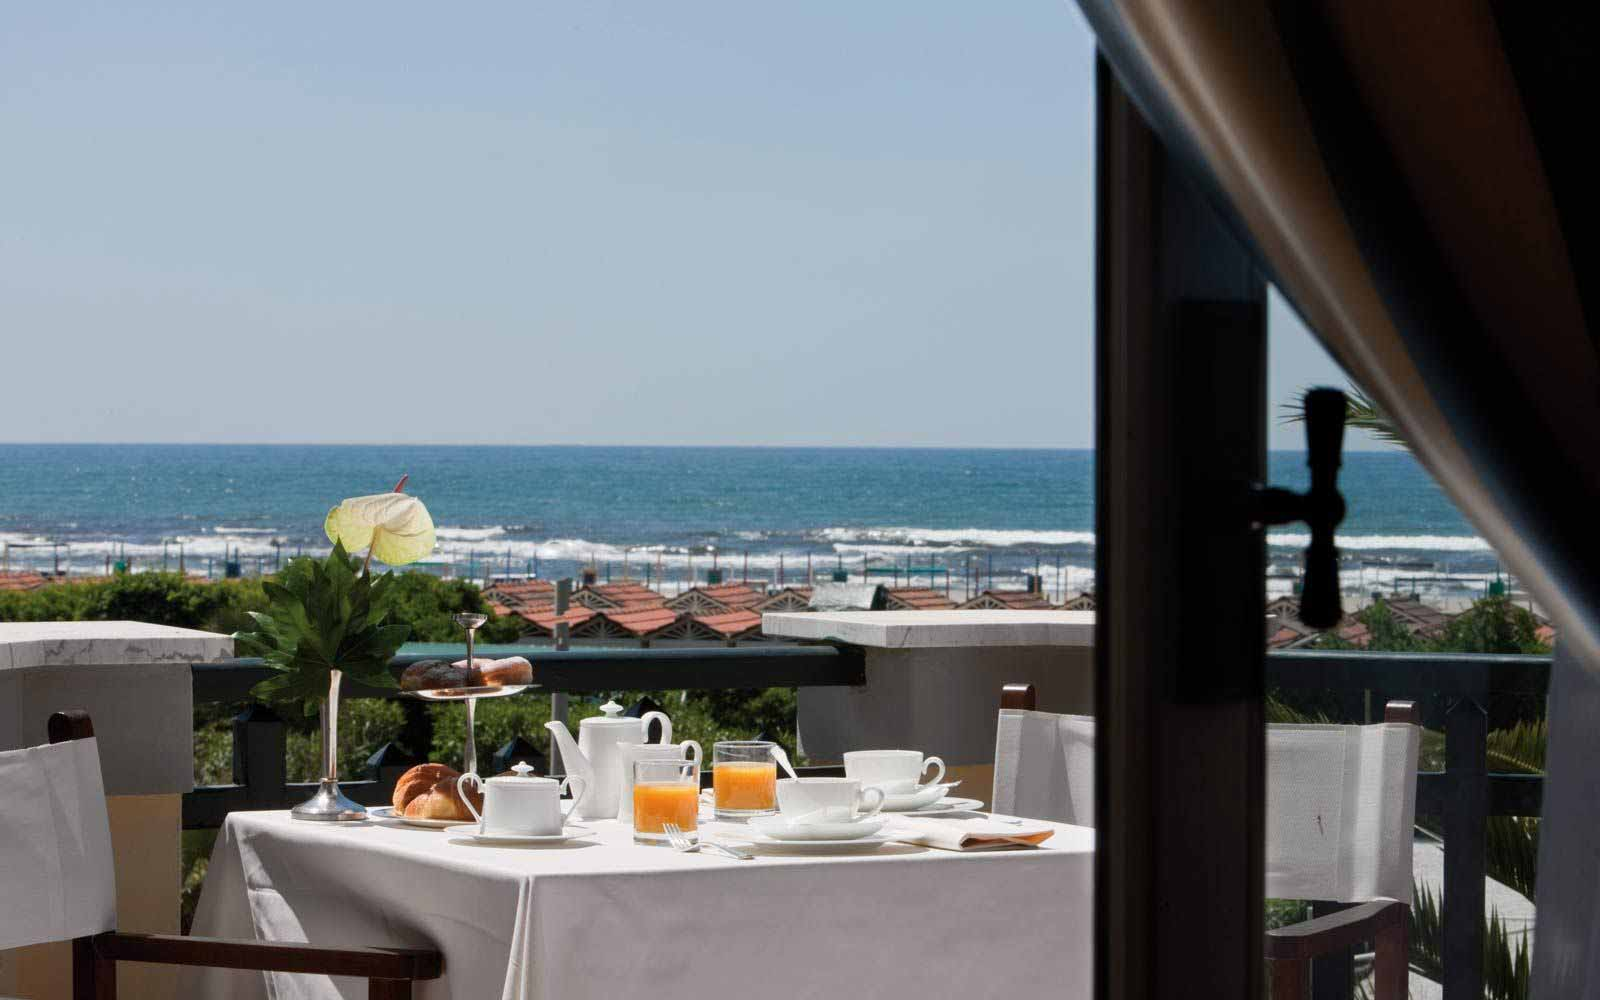 Breakfast on the terrace at Hotel Byron